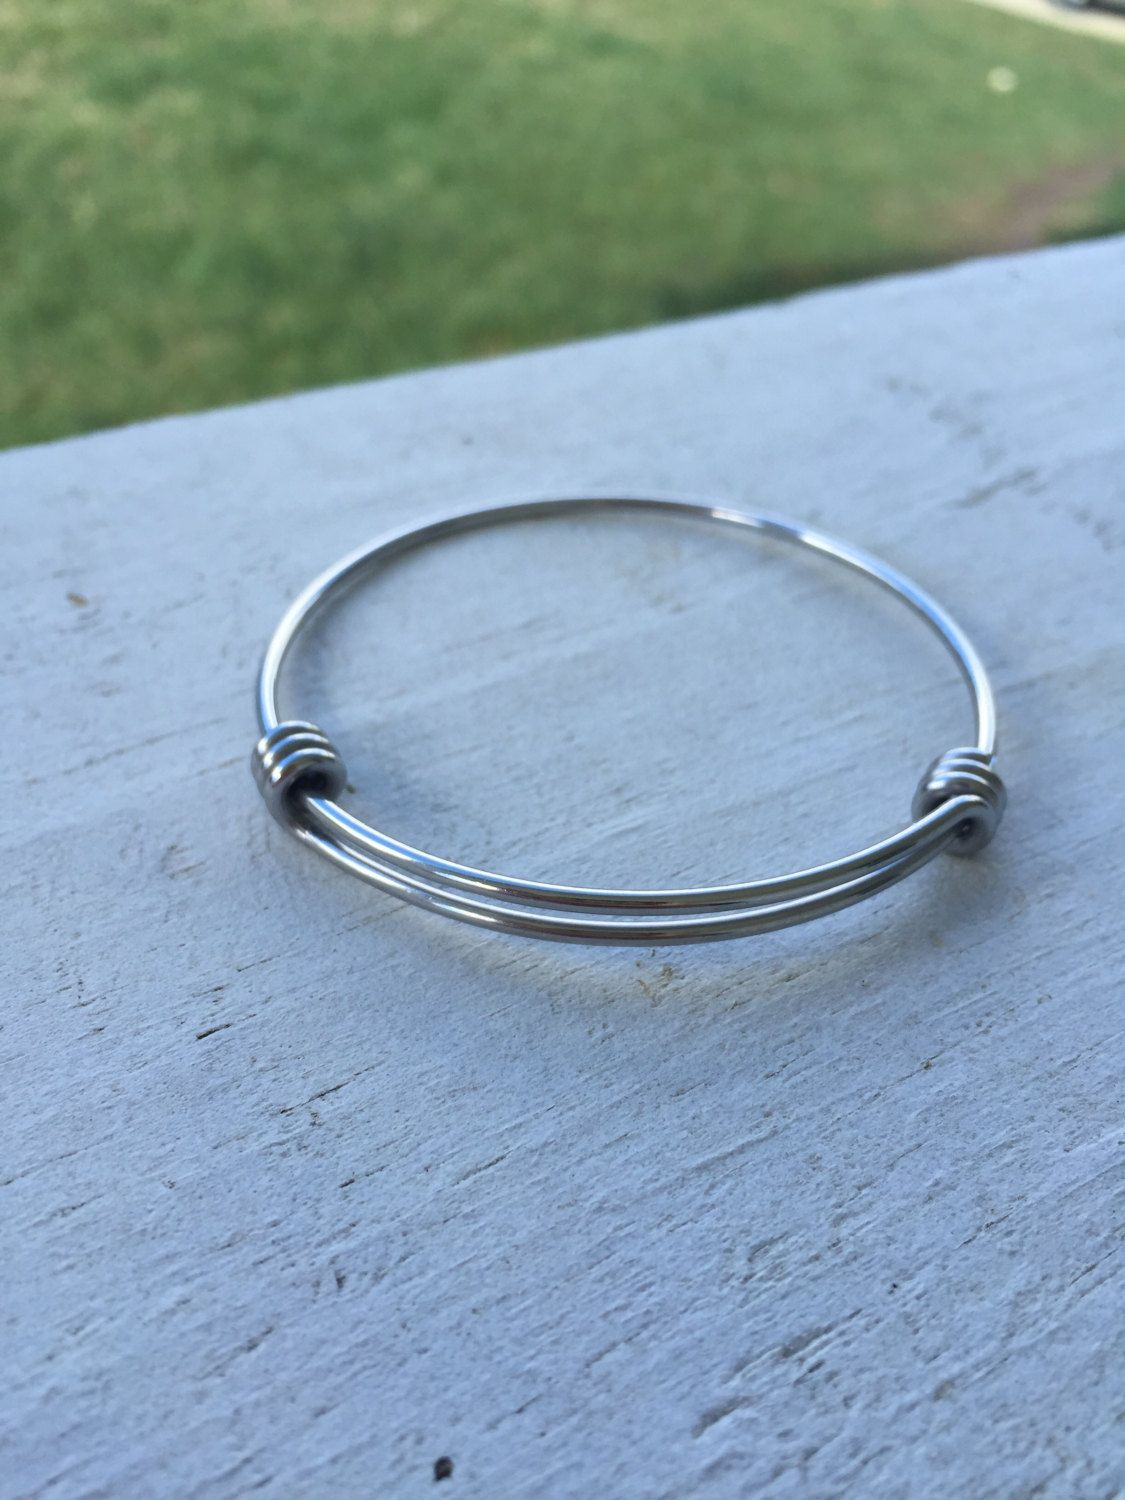 BULK PICK QUANTITY Stainless Expandable Bangles - Stainless Steel Bracelet - 60mm diameter - 1.8 mm wire - Adjustable - Wholesale - (#36) (3.49 USD) by BeCharmed101